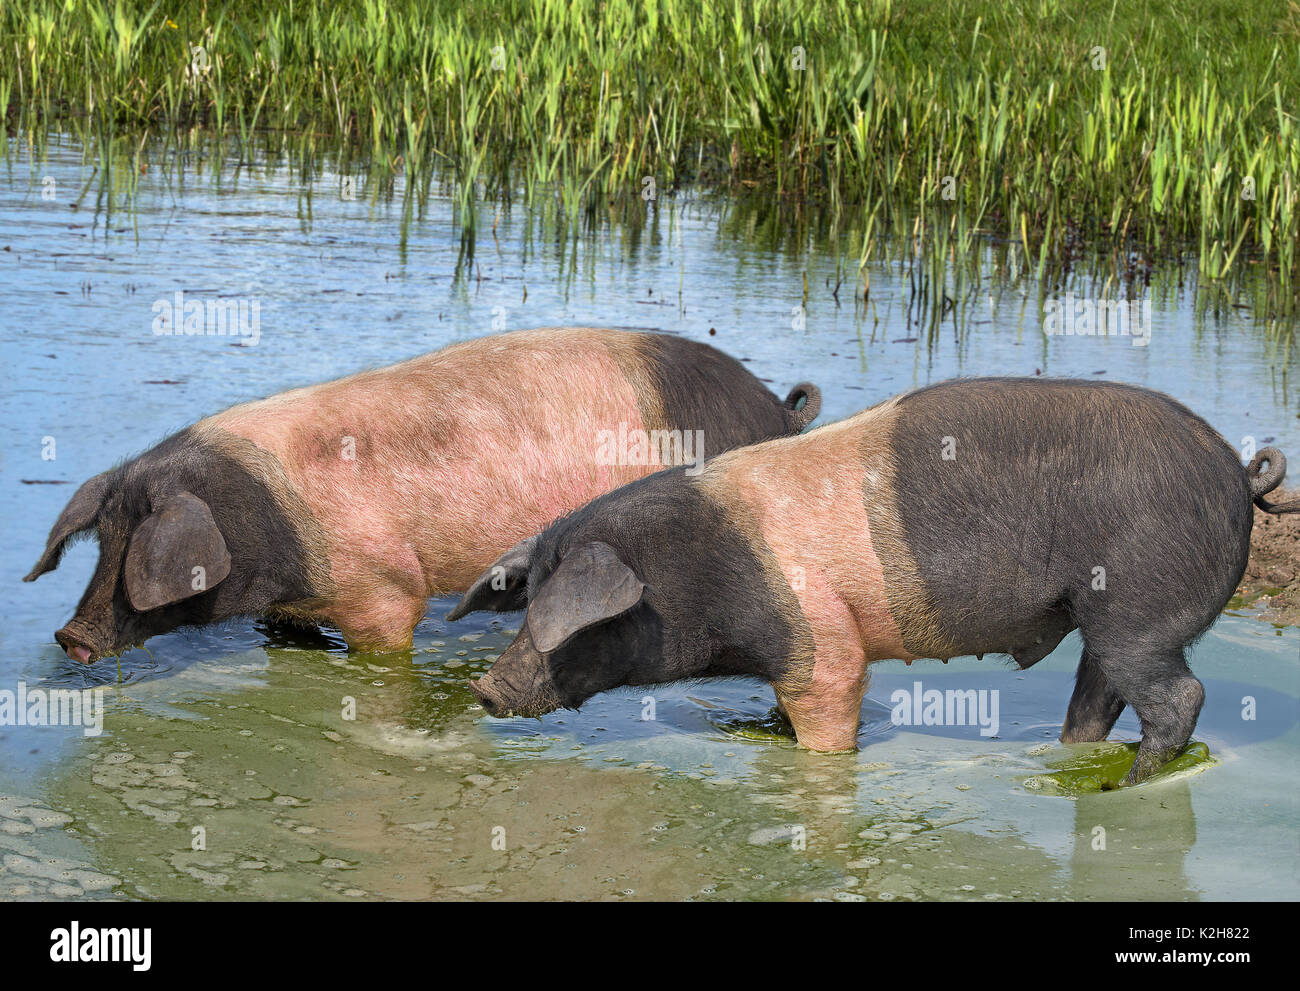 Domestic Pig (Sus scrofa domestica), breed: Angeln Saddleback, two individuals standing in a pond drinking - Stock Image